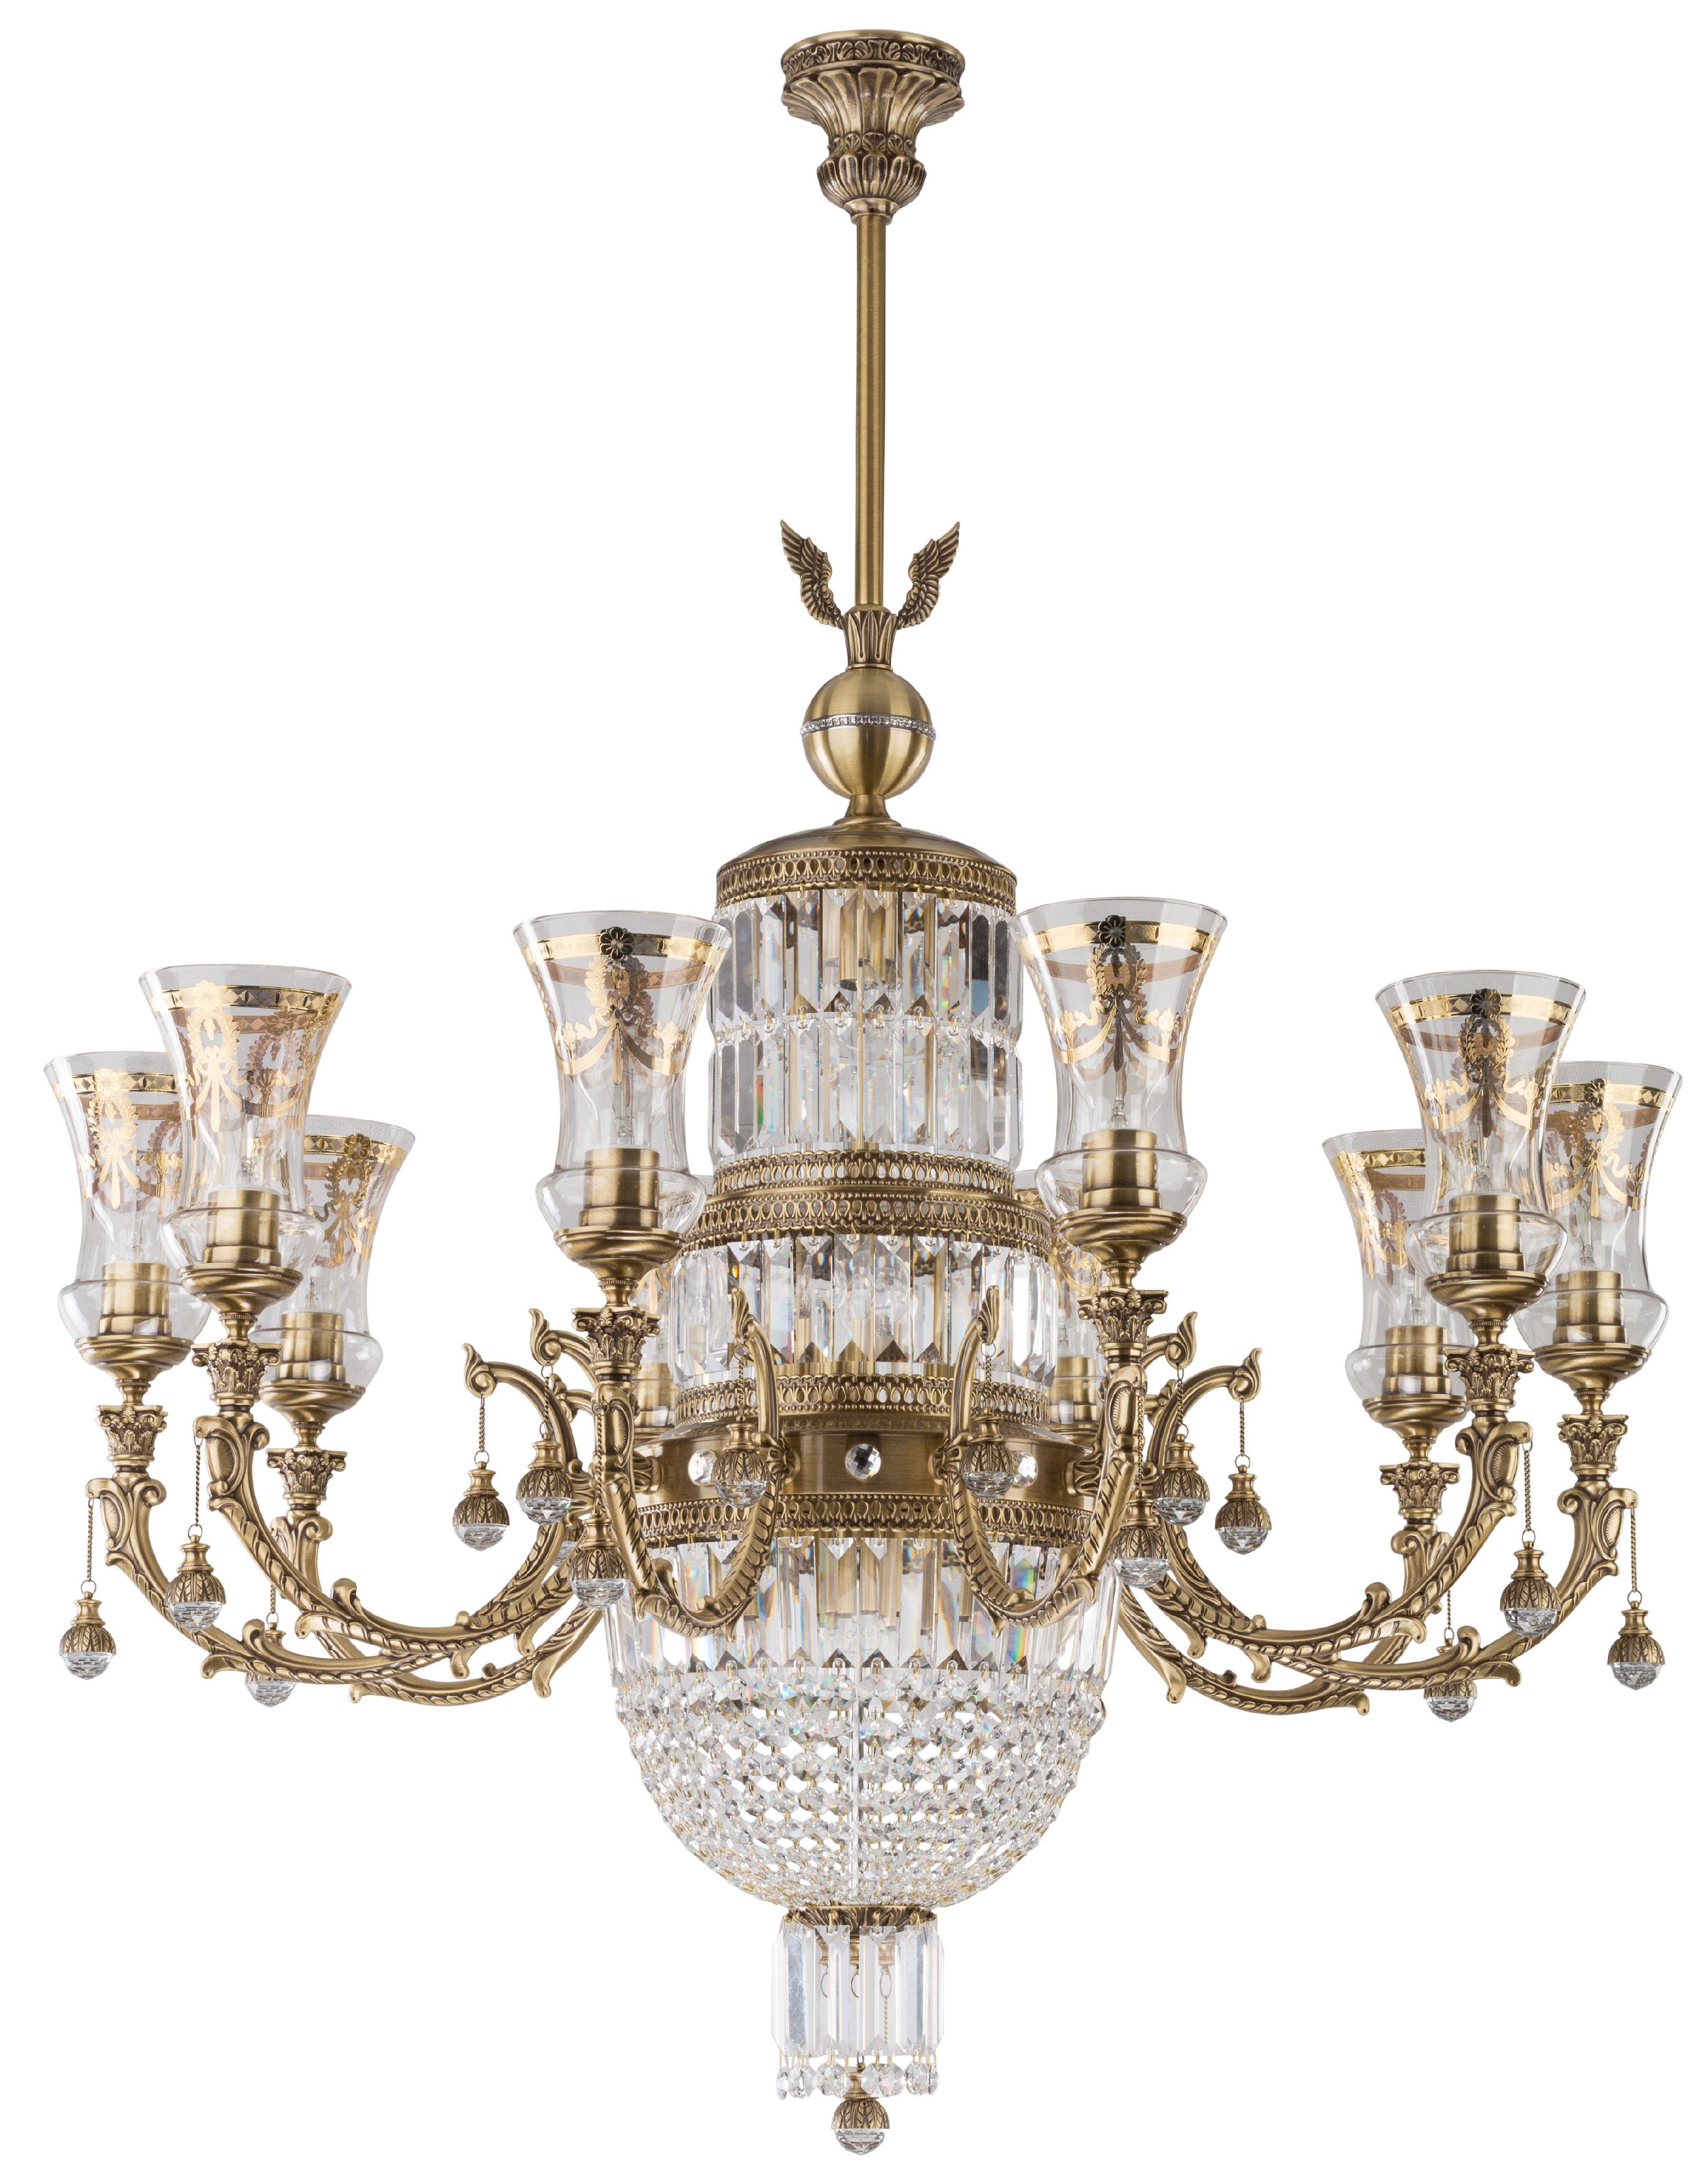 sienna royal palace swarovski crystal luxury chandelier 10 arms brass sculpture empire glass shade pendant light gold nickel patina